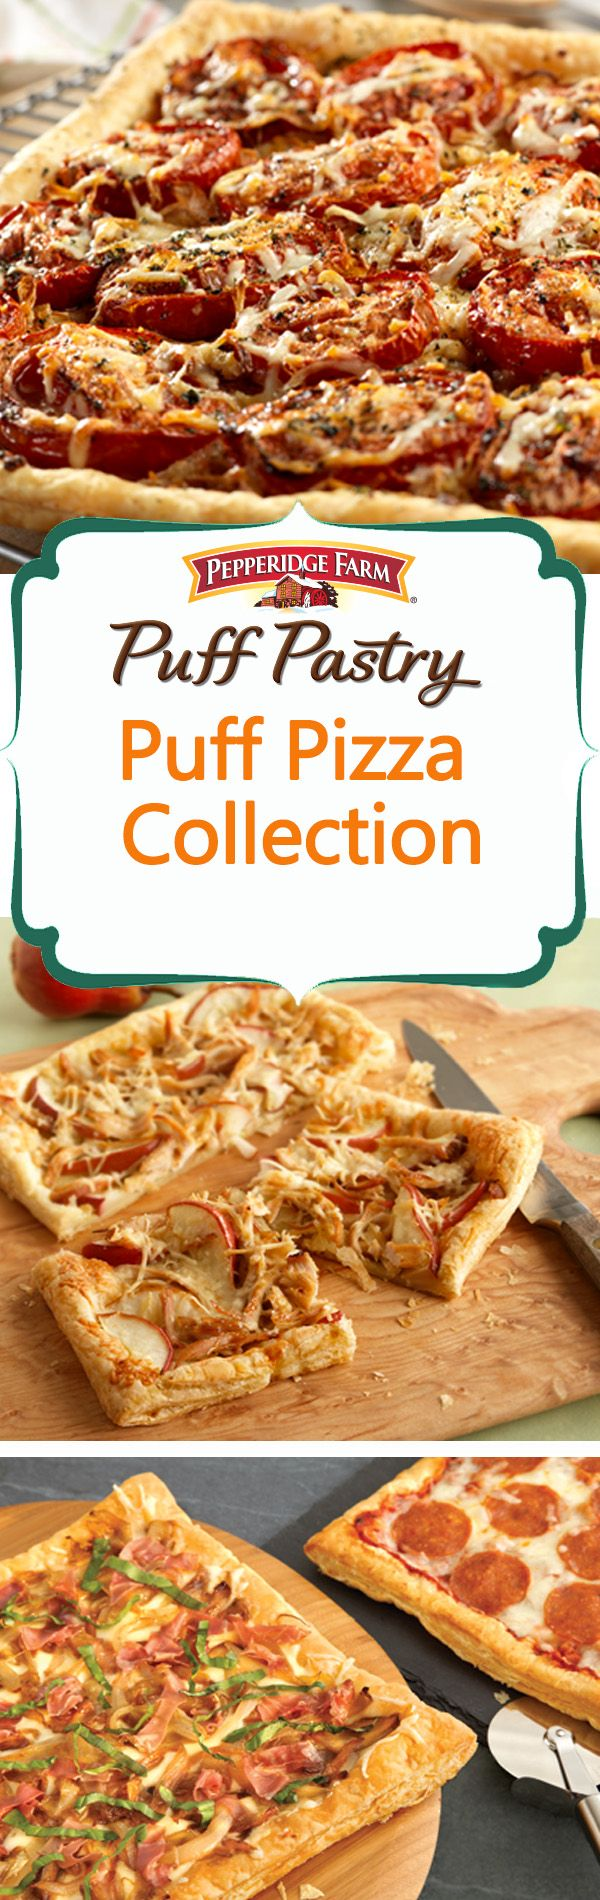 Puff Pastry Pizza Recipe Collection. If you haven't made pizza with Puff Pastry yet, you have to try it! Need a little inspiration? Check out this list of our 25 favorite pizza recipes - all layered on a flaky Puff Pastry crust. With toppings like roasted tomato and onion, and sopressata and lemony arugula; you'll want to open a pizza parlor from your kitchen.